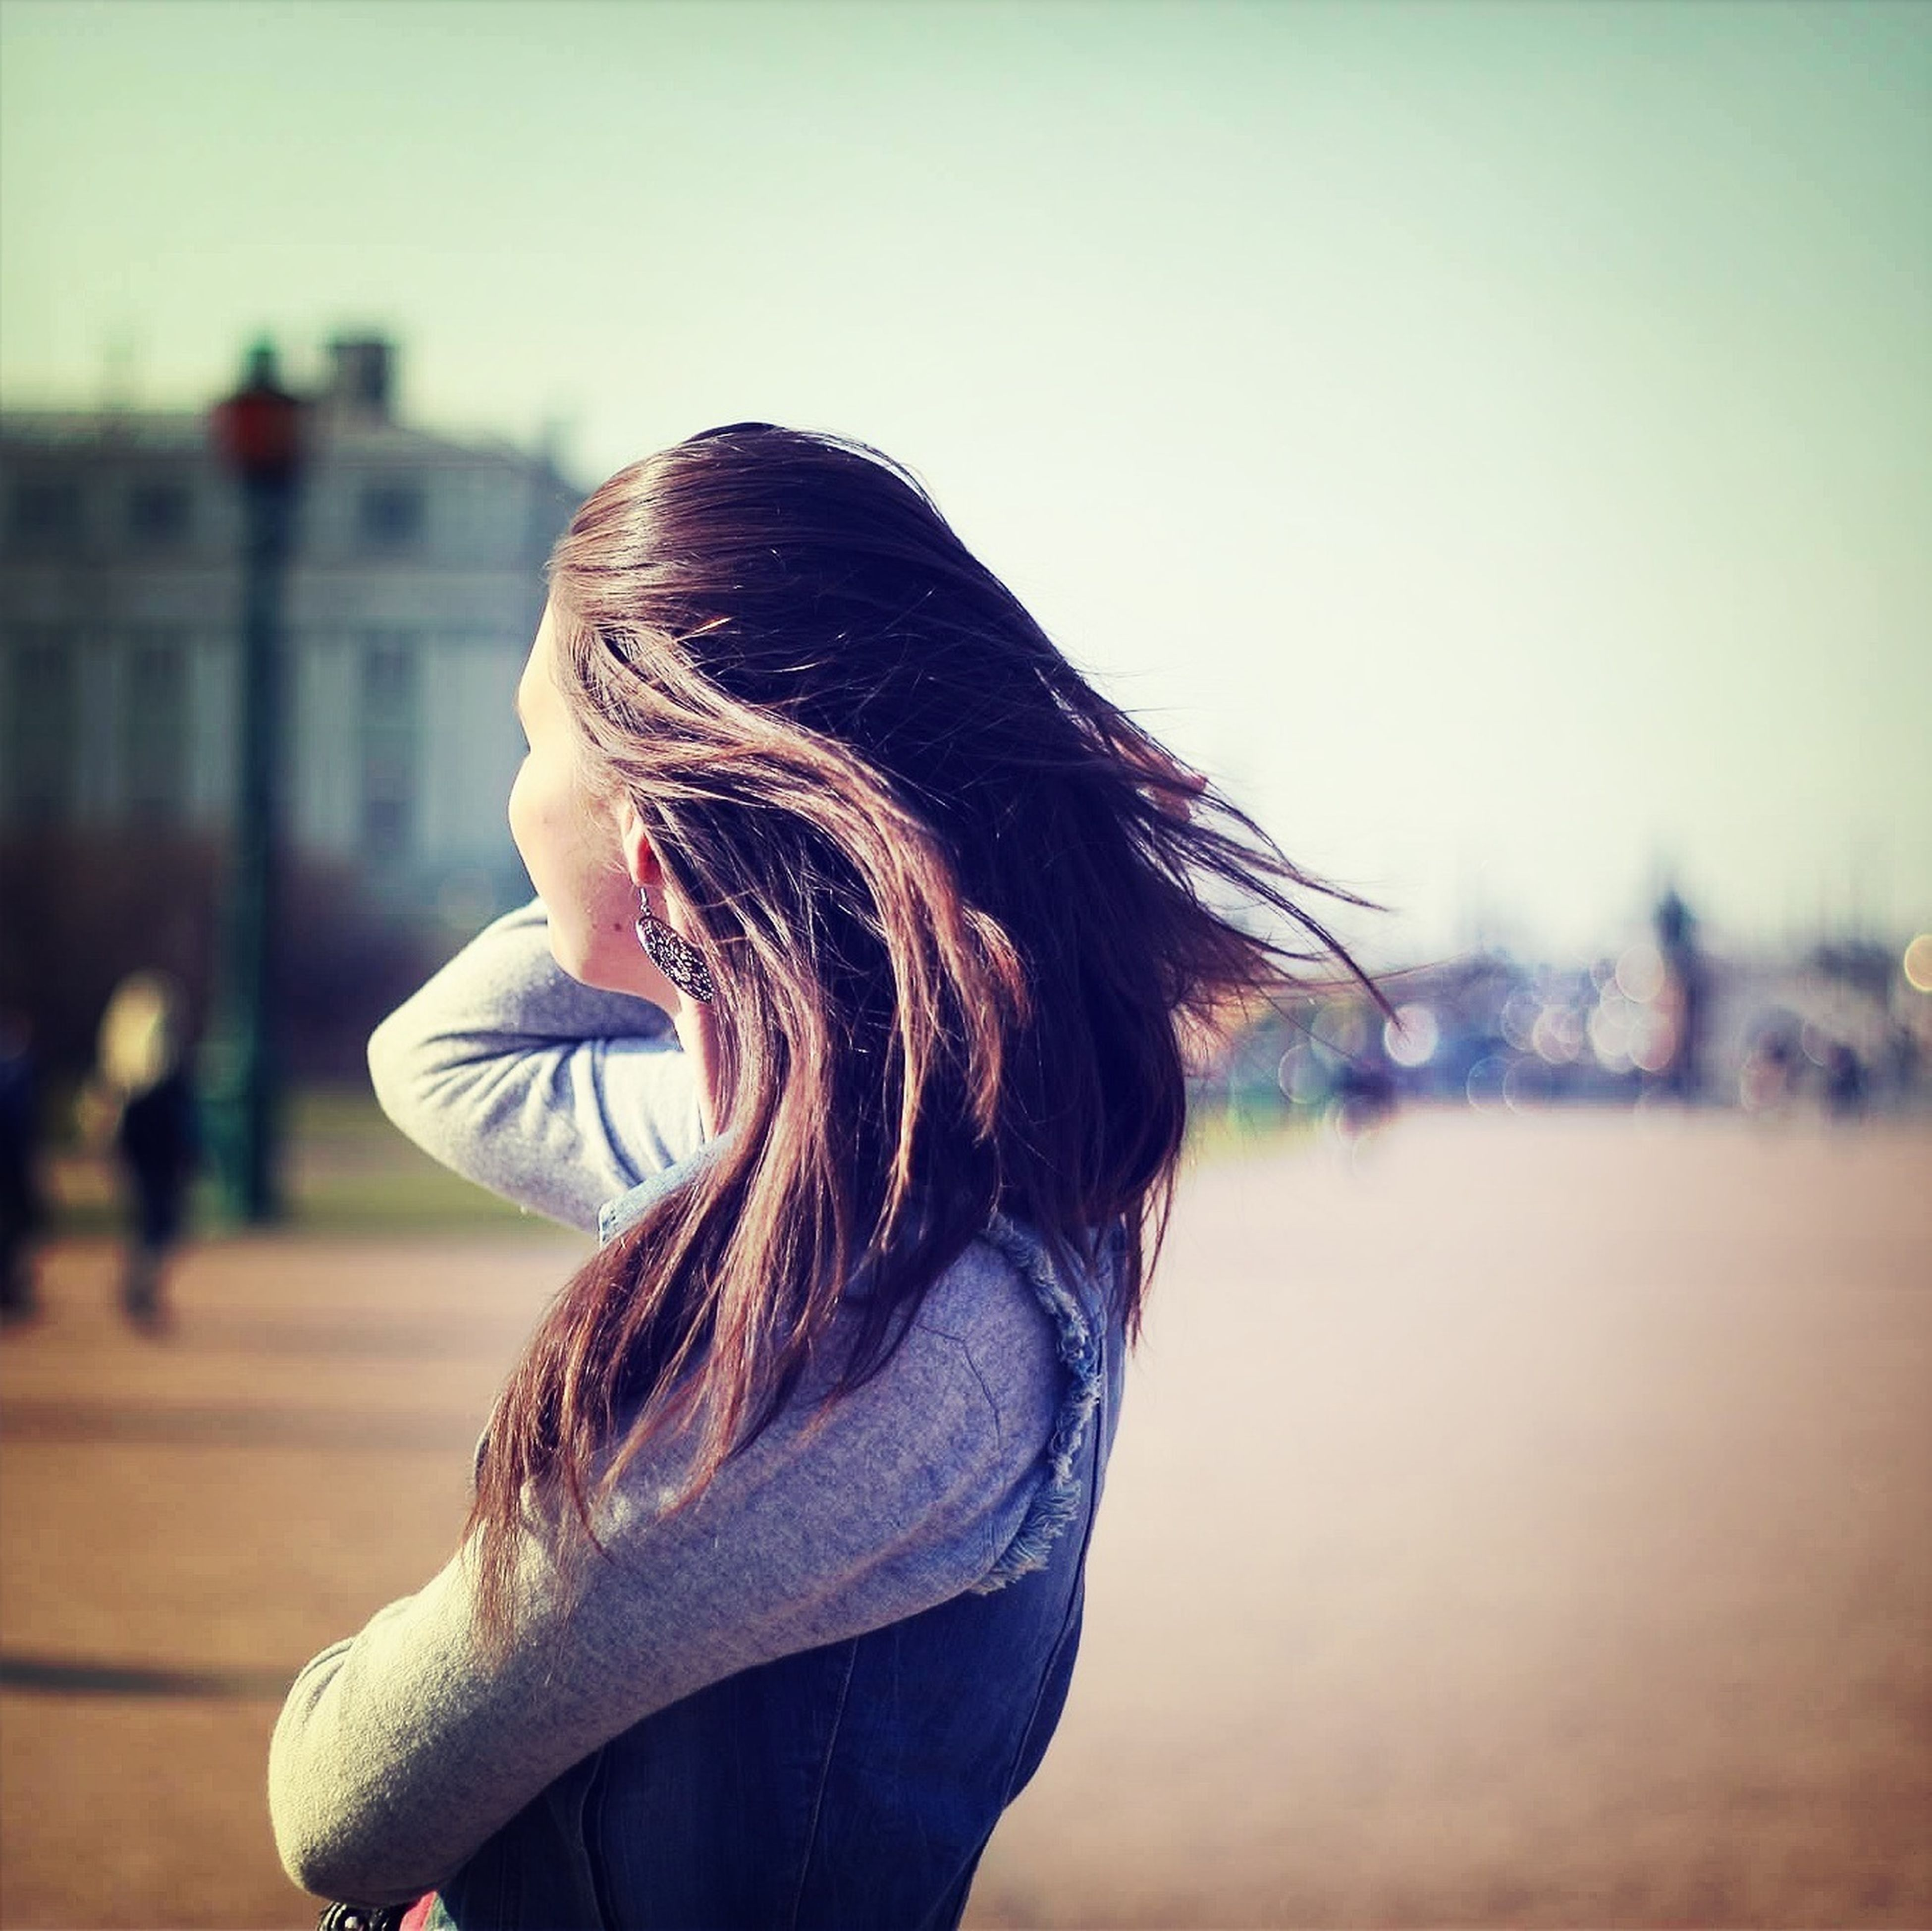 focus on foreground, lifestyles, long hair, headshot, leisure activity, close-up, rear view, human hair, side view, person, brown hair, young women, blond hair, clear sky, outdoors, head and shoulders, casual clothing